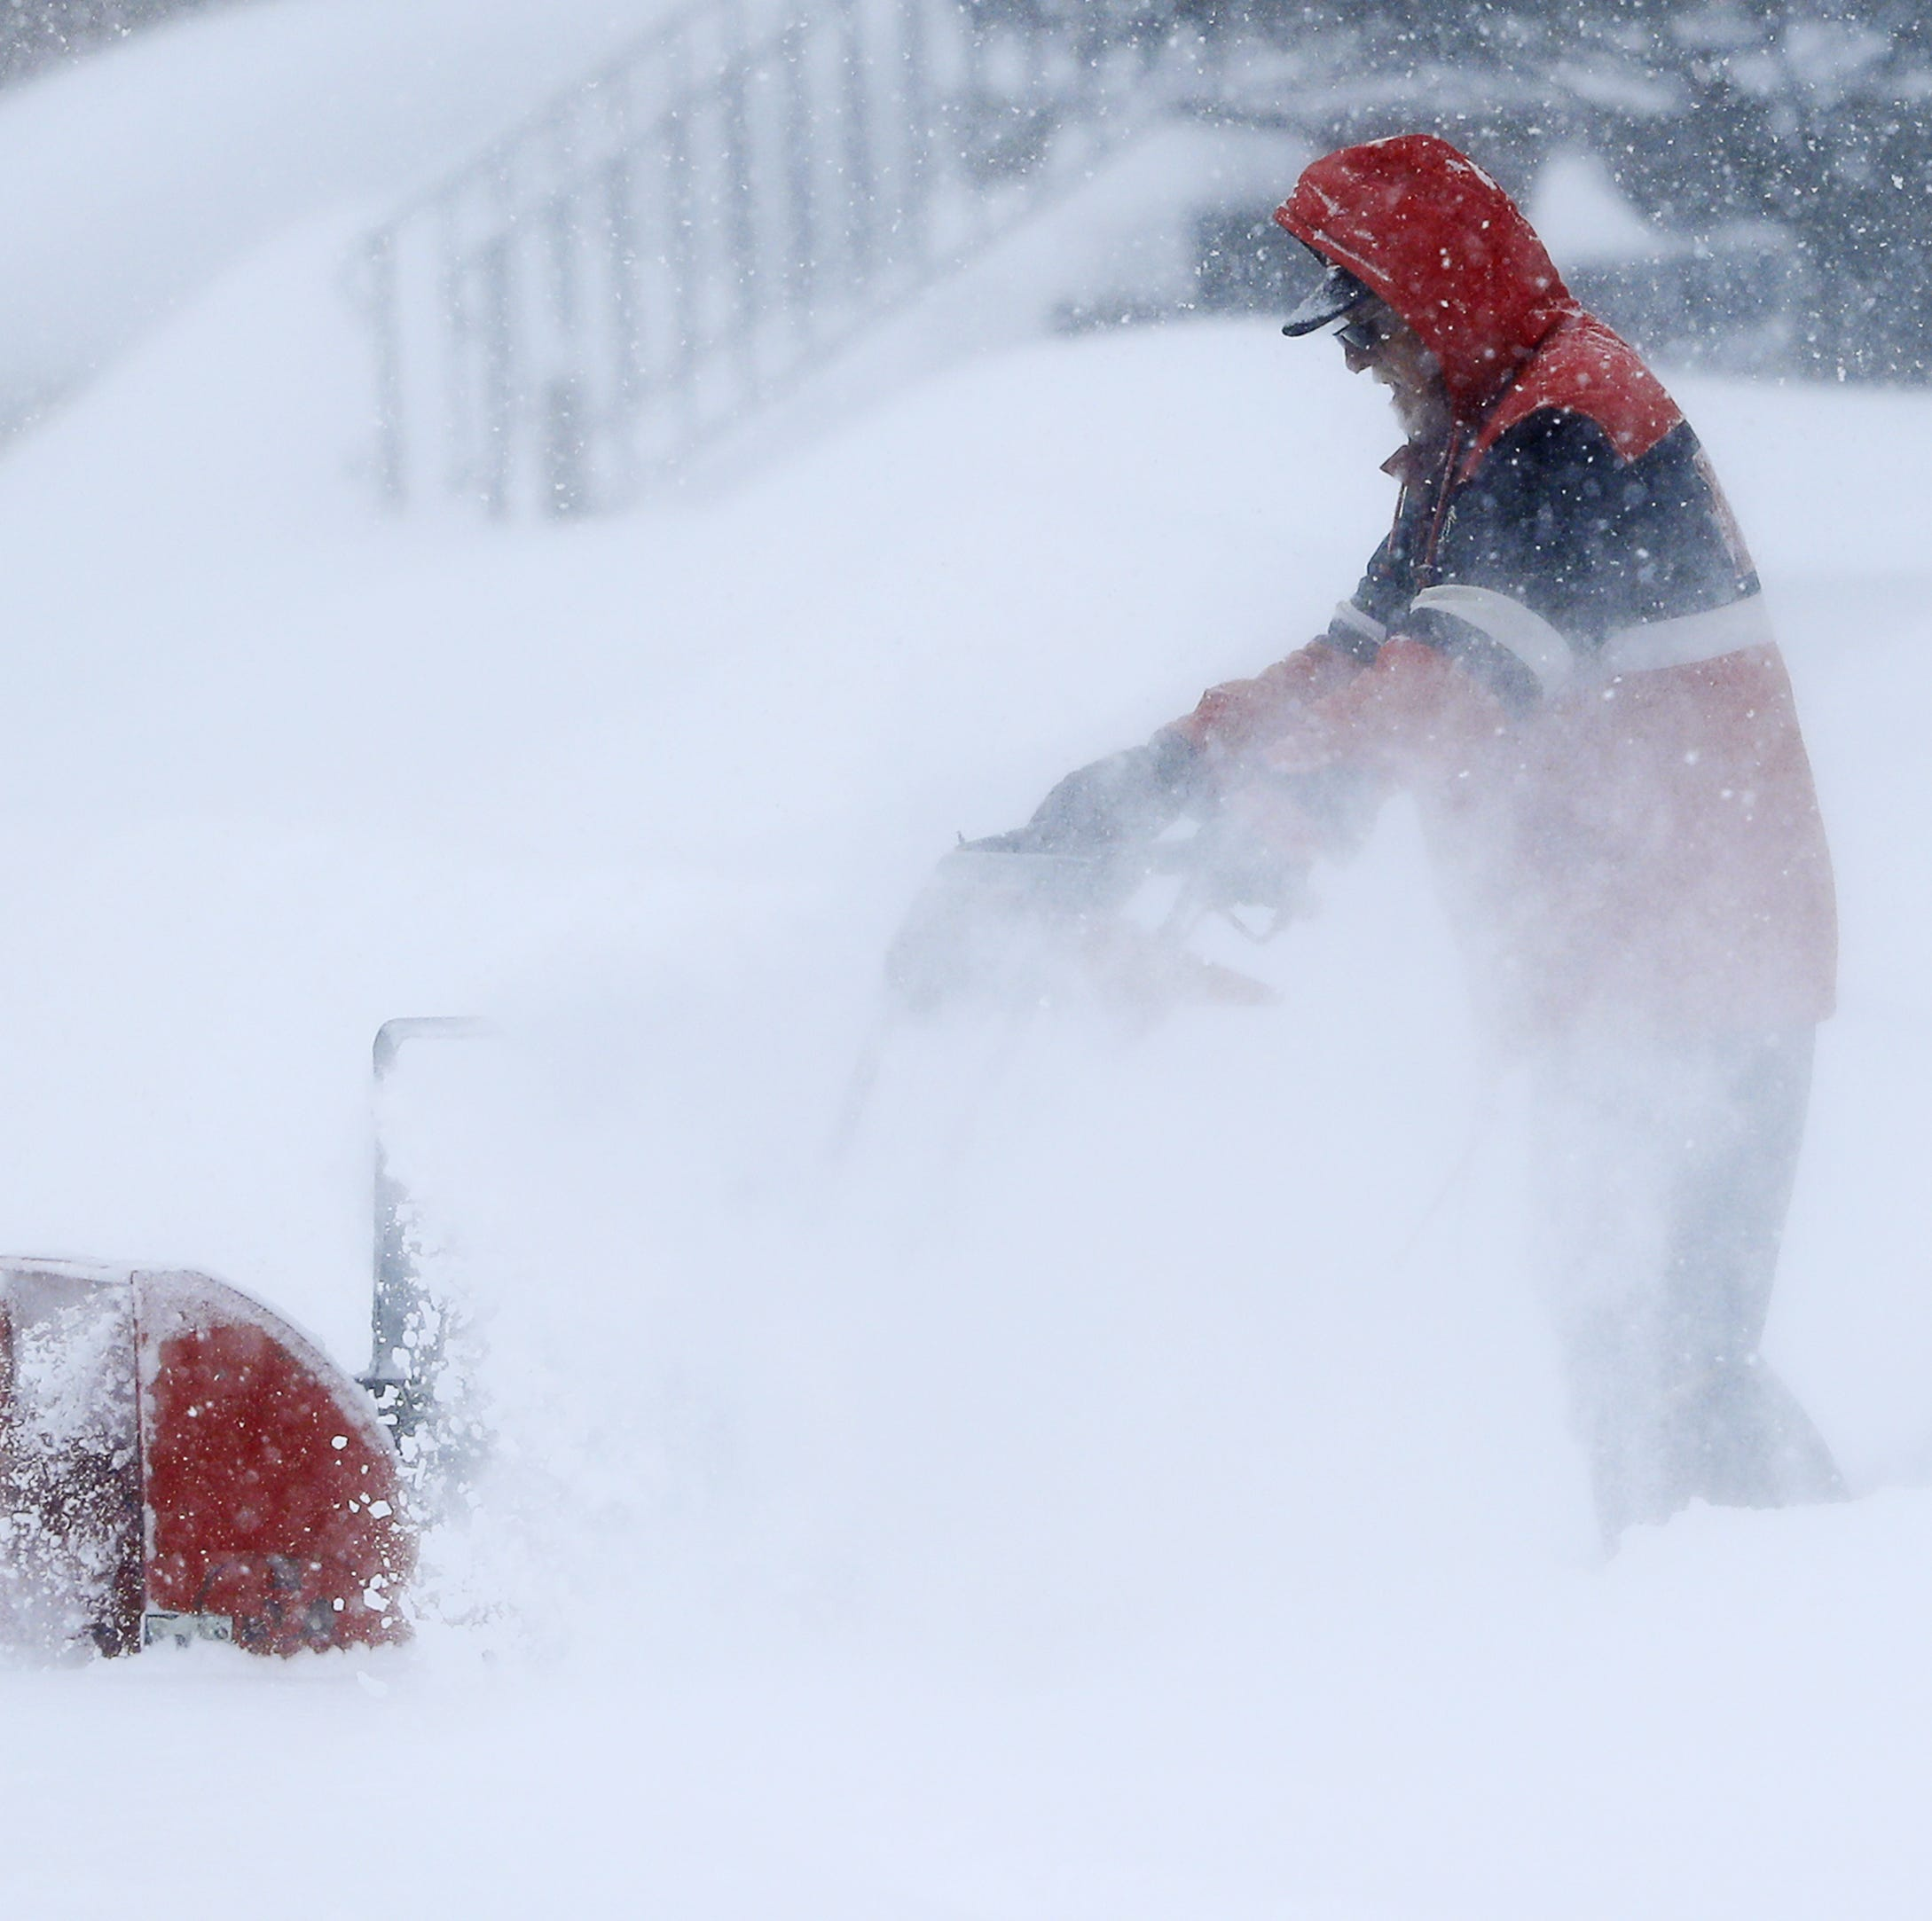 As snow piled up, Green Bay issued more than 100 fines for unshoveled sidewalks